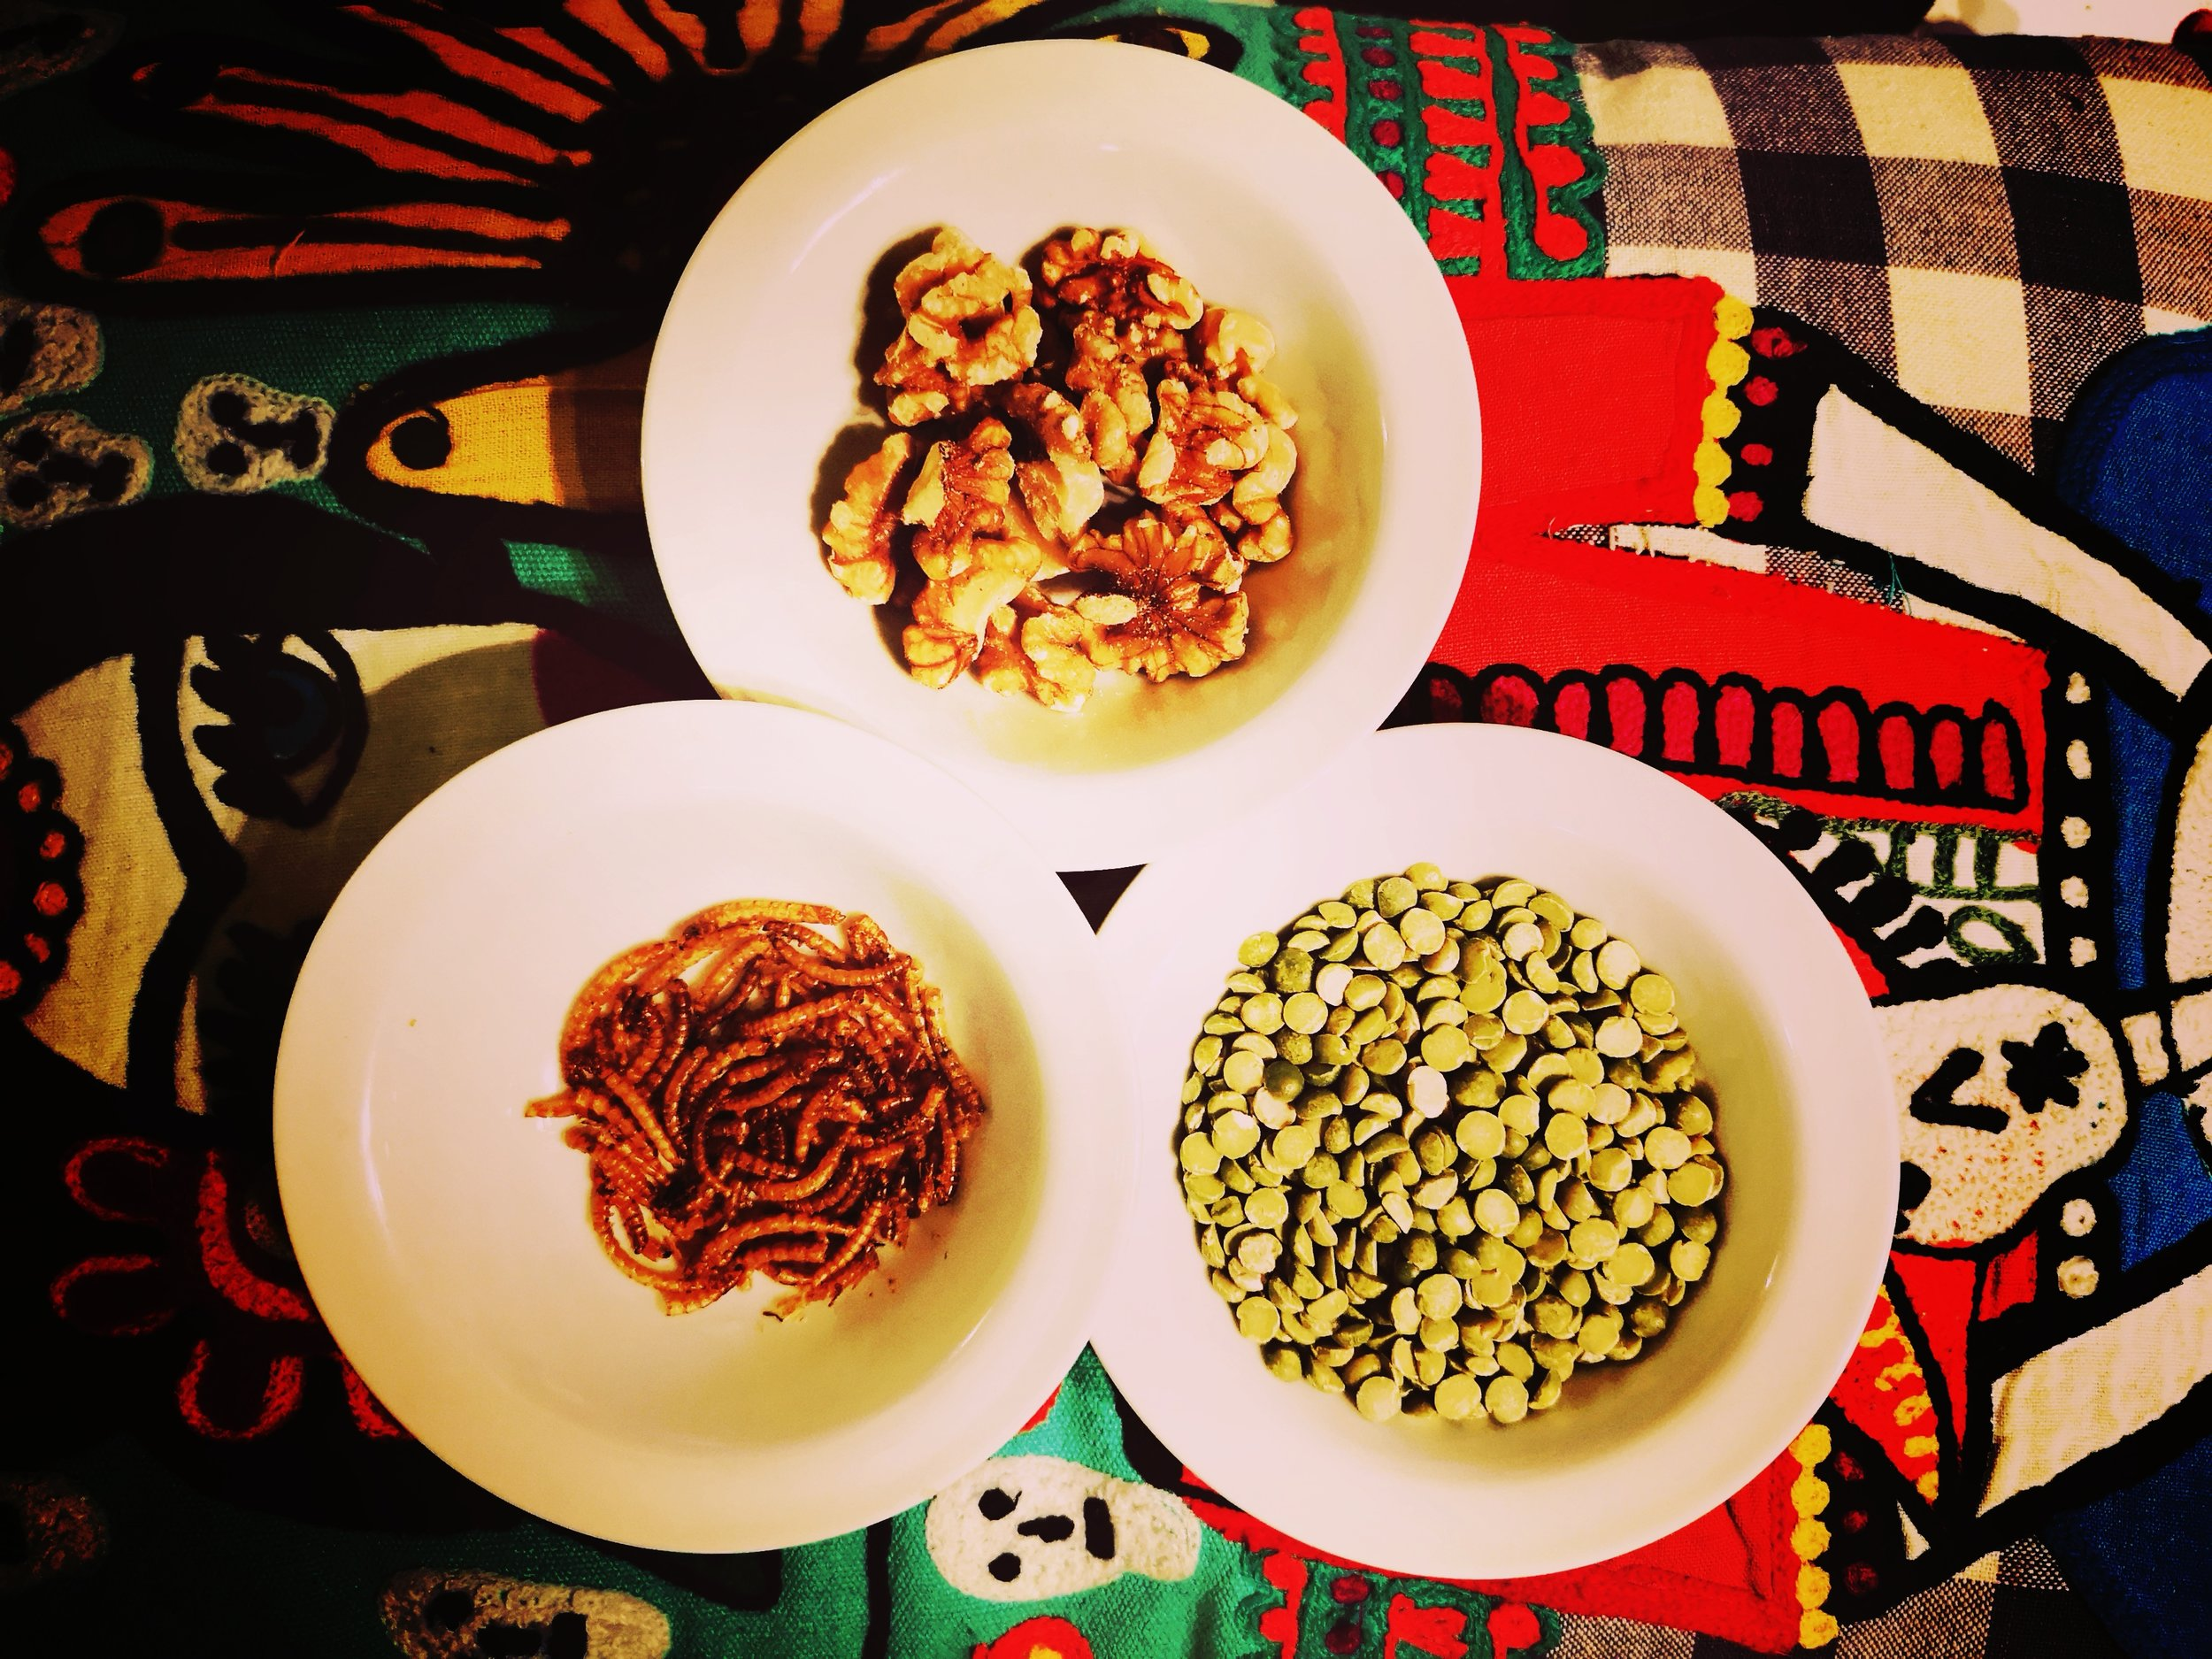 Three alternative protein sources. Nuts, legumes and larvae.